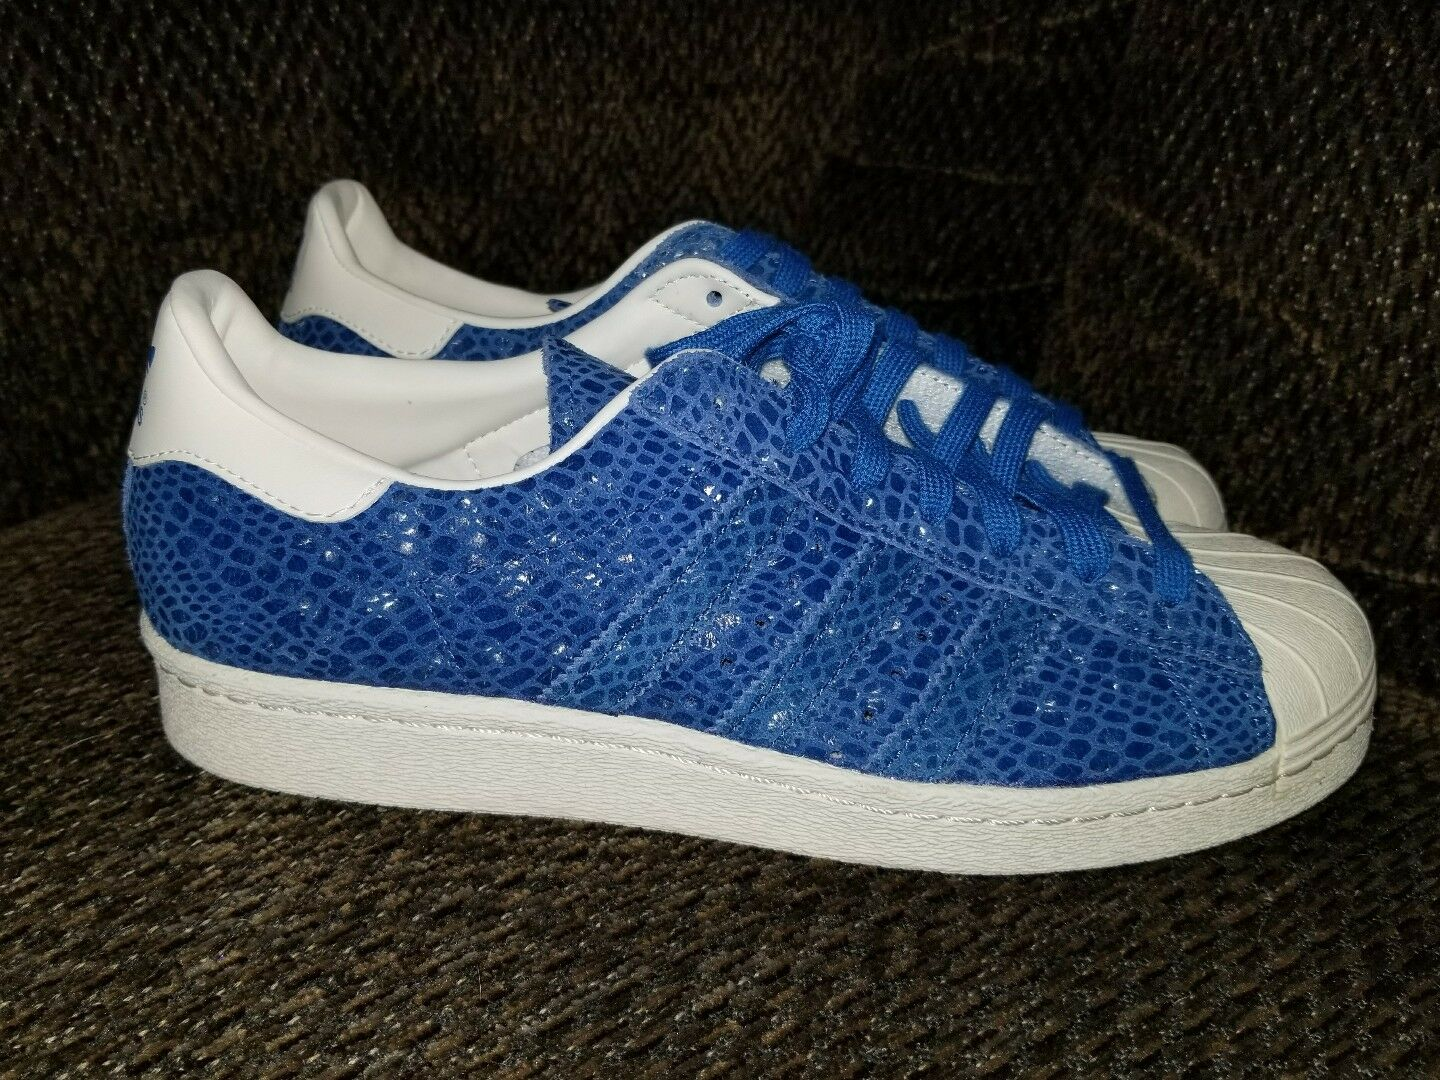 adidas originals superstar surf der 80er schlangenhaut größe 8,5 s81326 surf superstar - blau 1f30cc